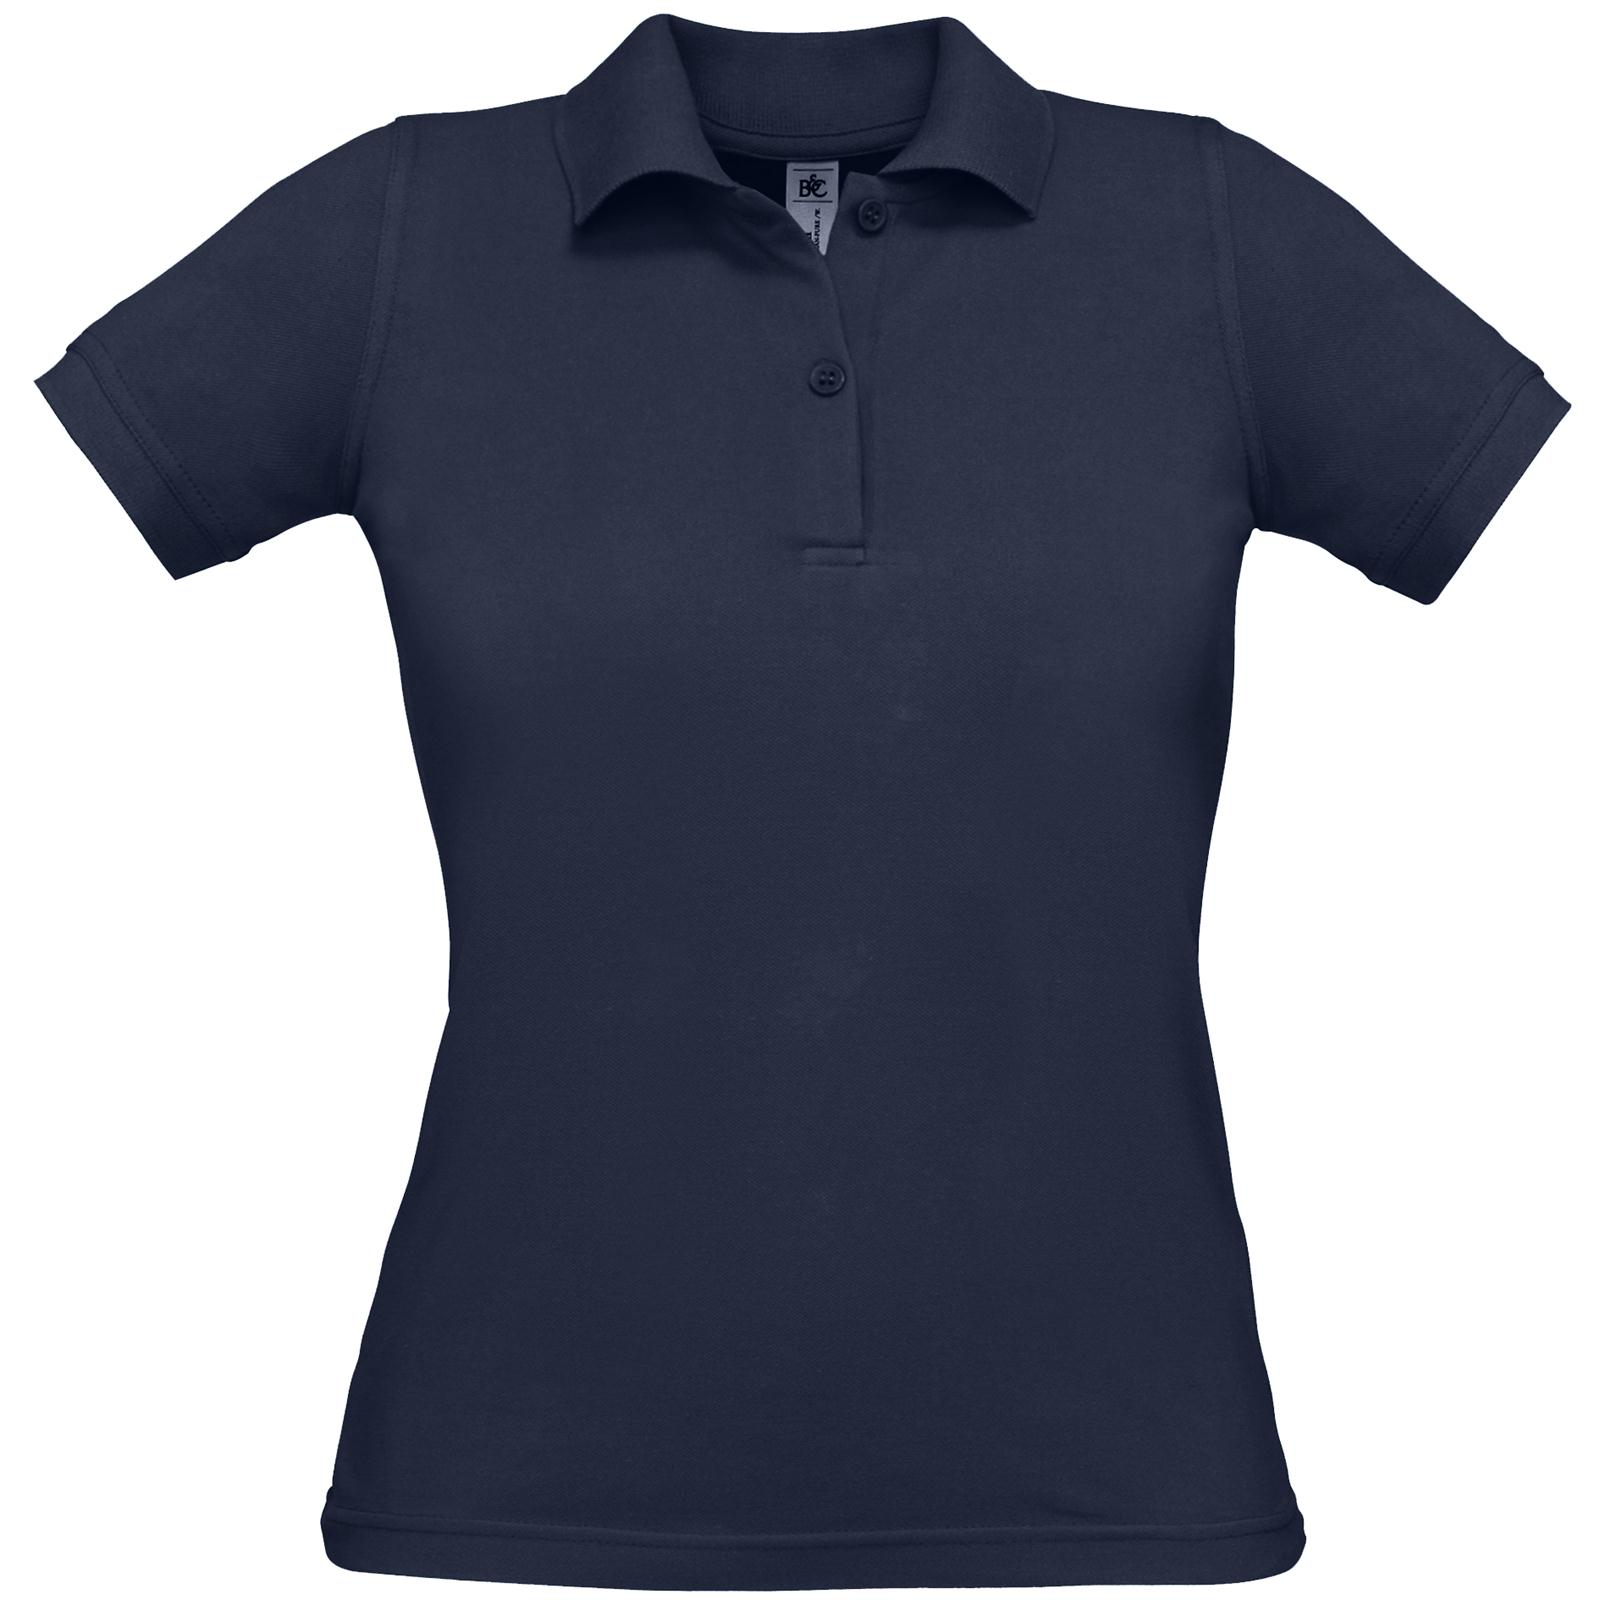 new womens skinny ladies safran fitted cotton colar cuffs polo shirt size xs 2xl ebay. Black Bedroom Furniture Sets. Home Design Ideas